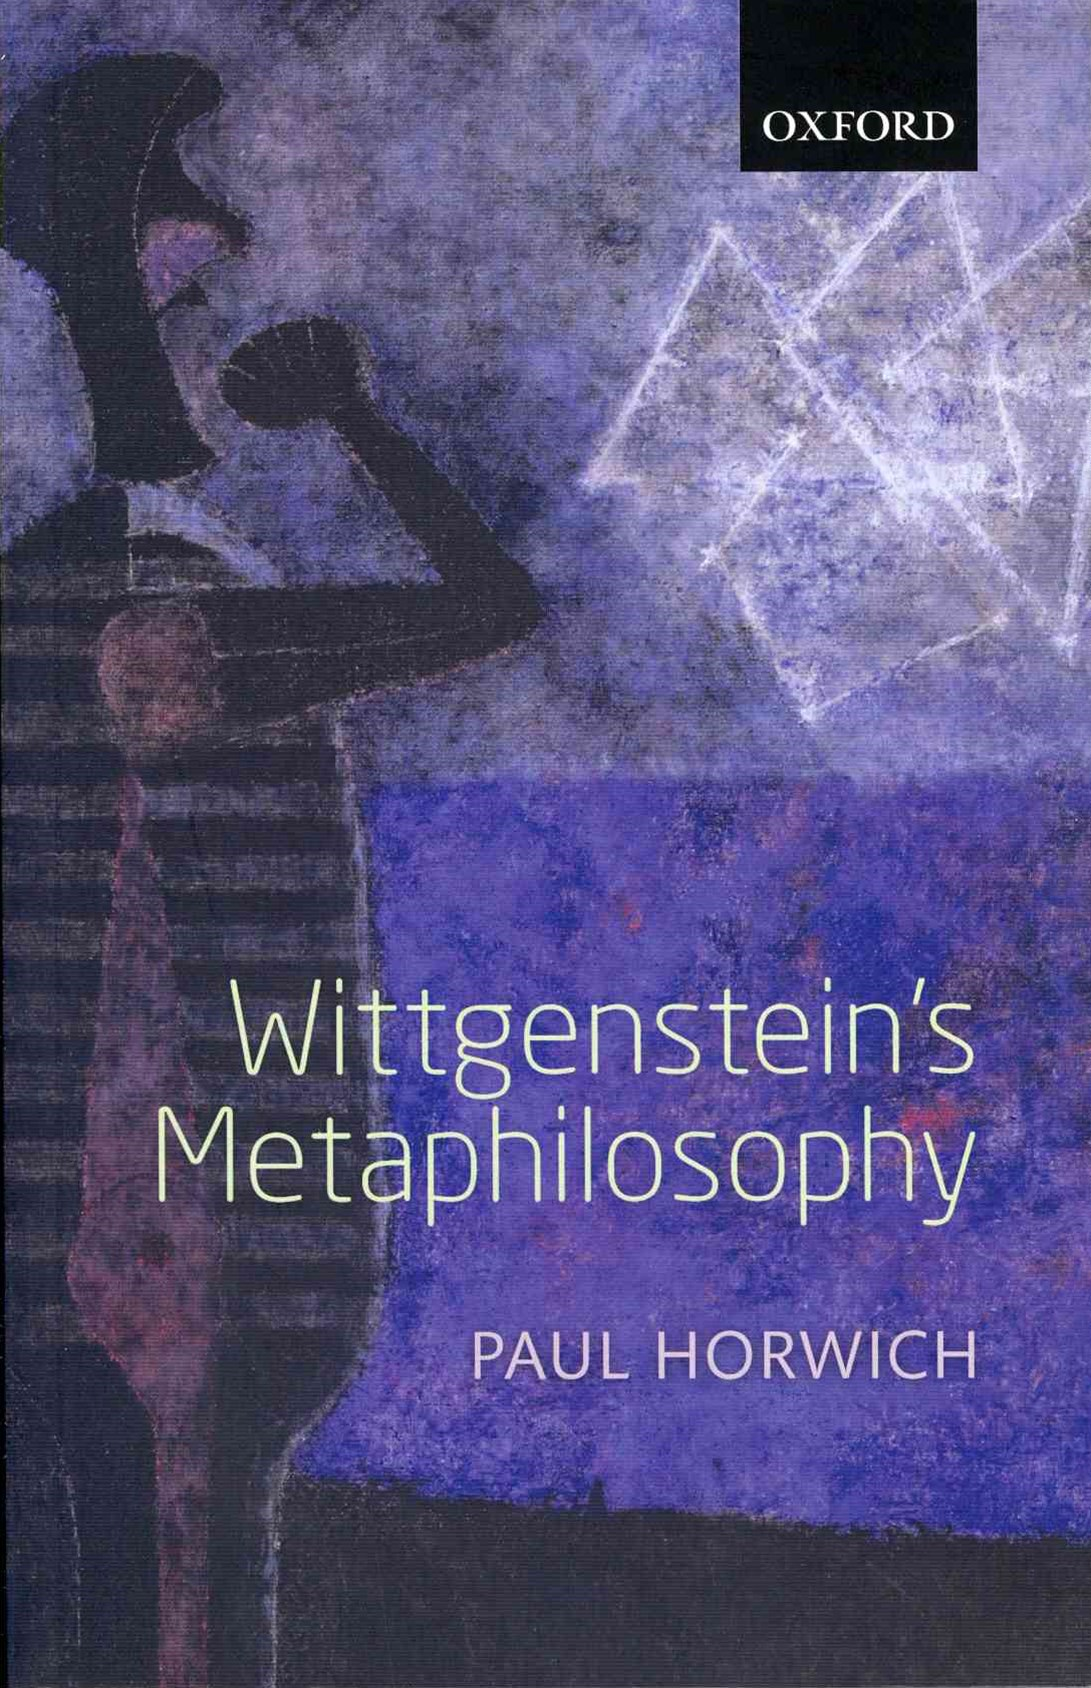 Wittgenstein's Metaphilosophy